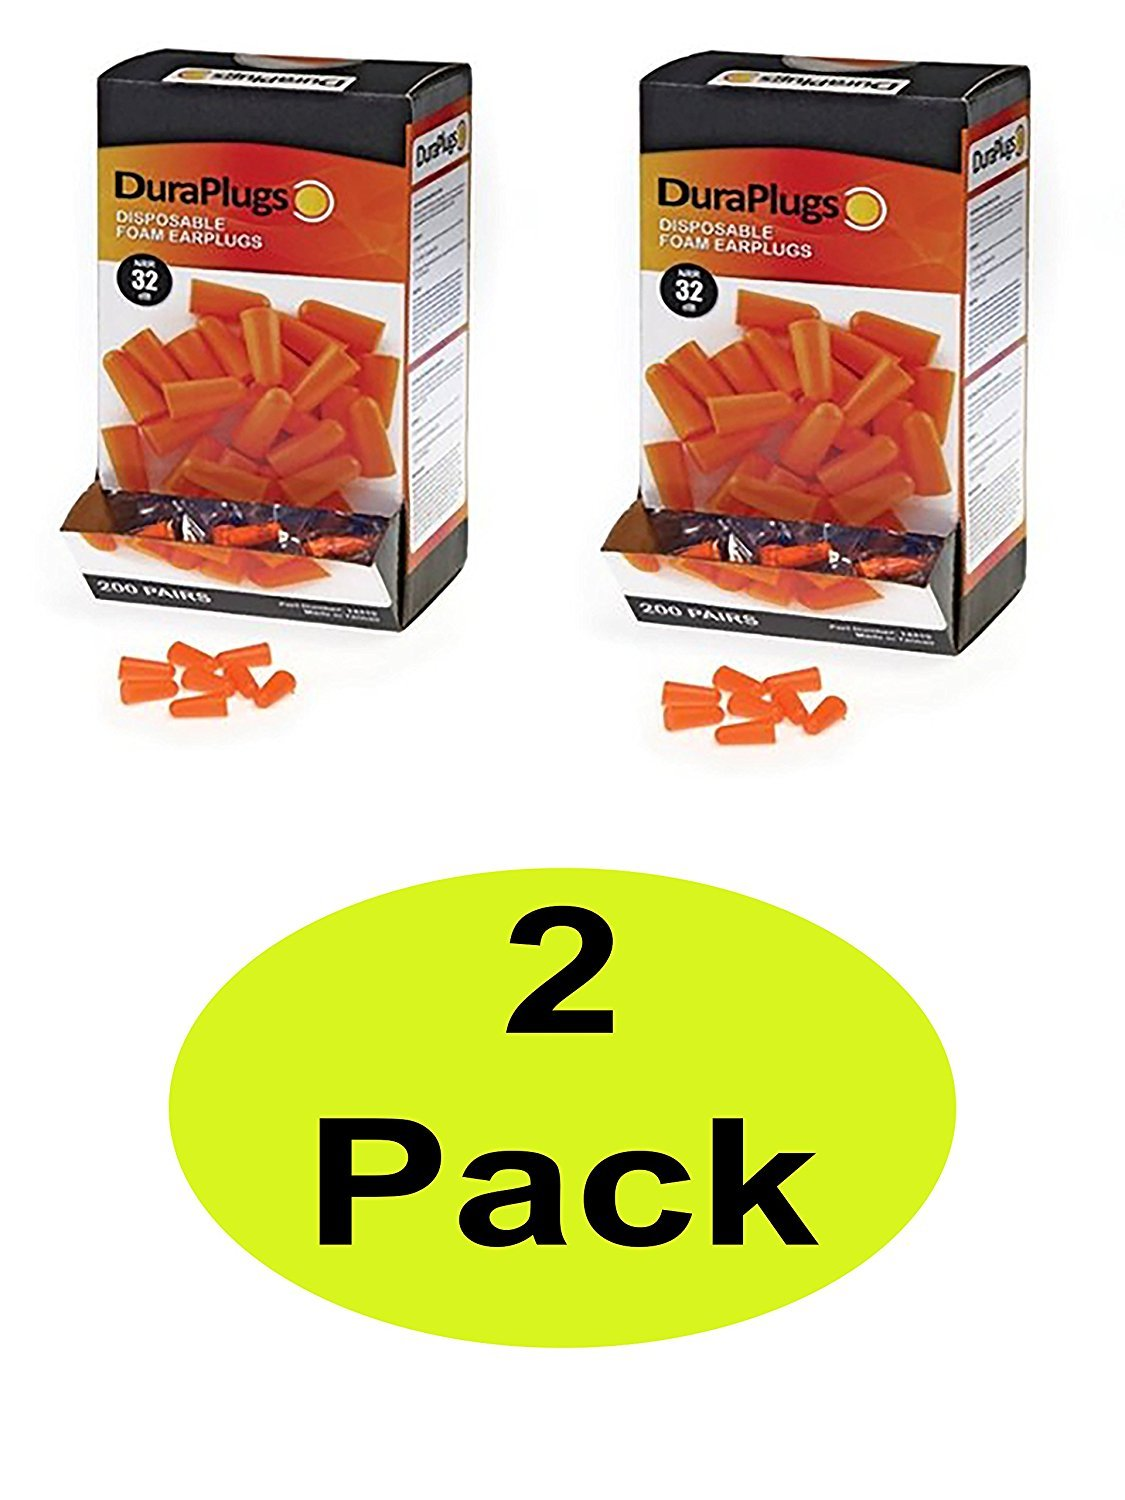 Liberty DuraPlug Uncorded Disposable Foam Earplug with 32 dB NRR, Orange (Case of 400 Pairs) (400)